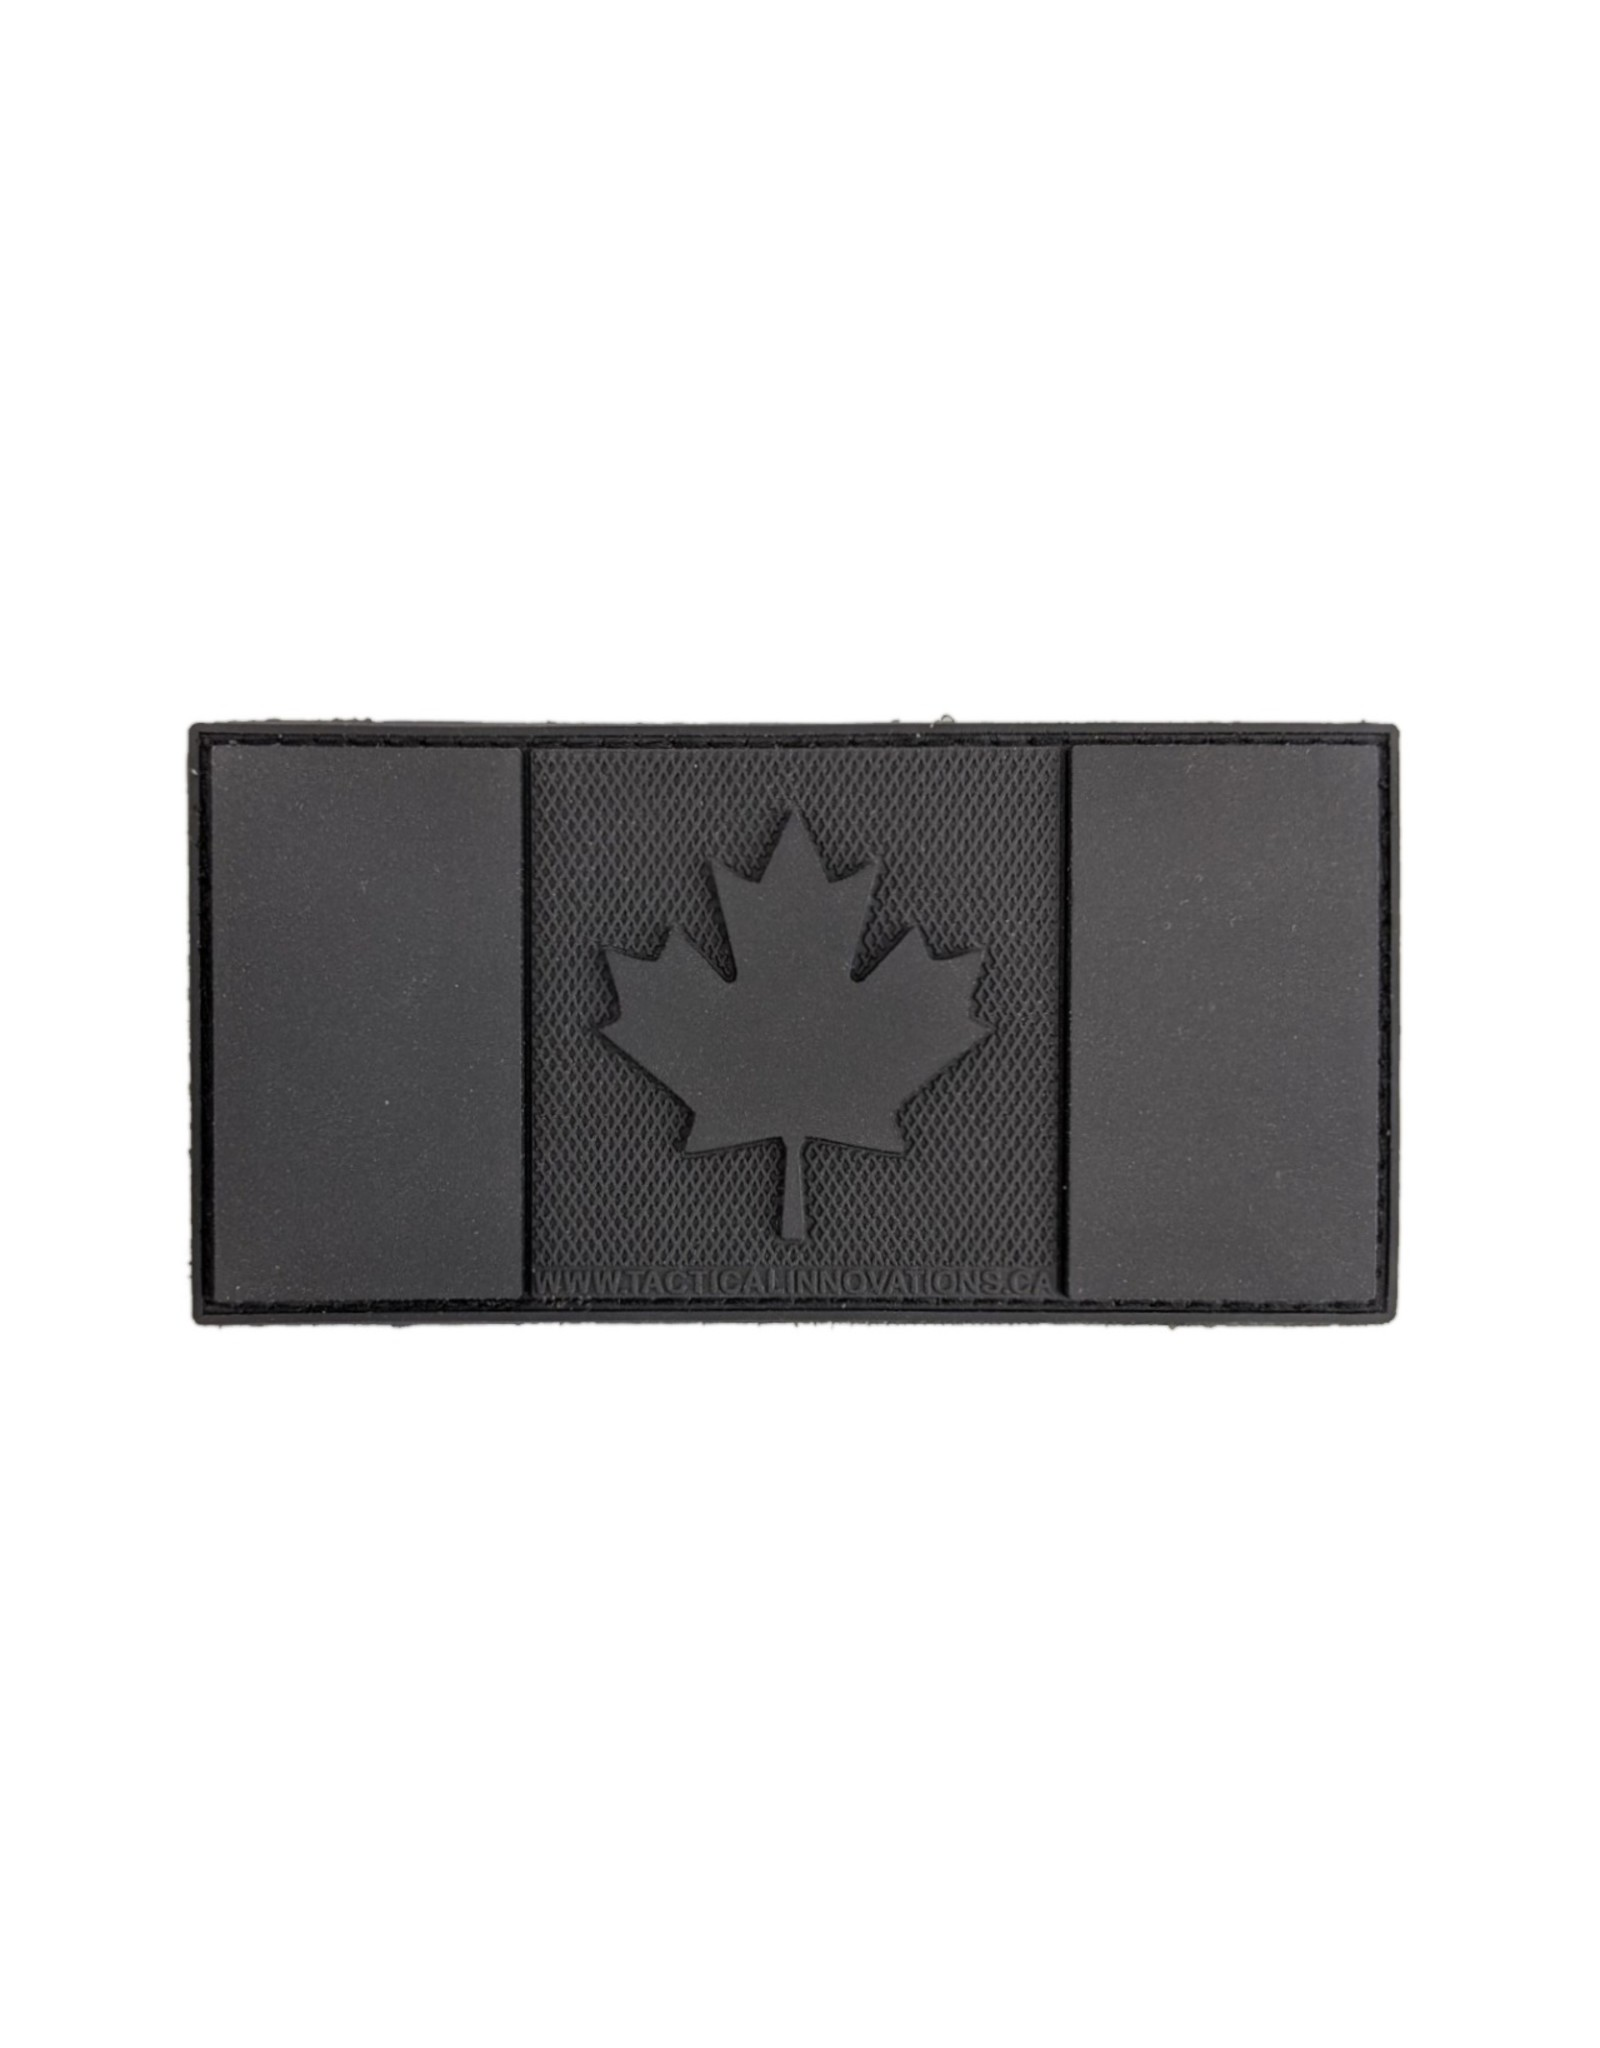 TIC Patch - CANADA FLAG 2X4 BLKOUT